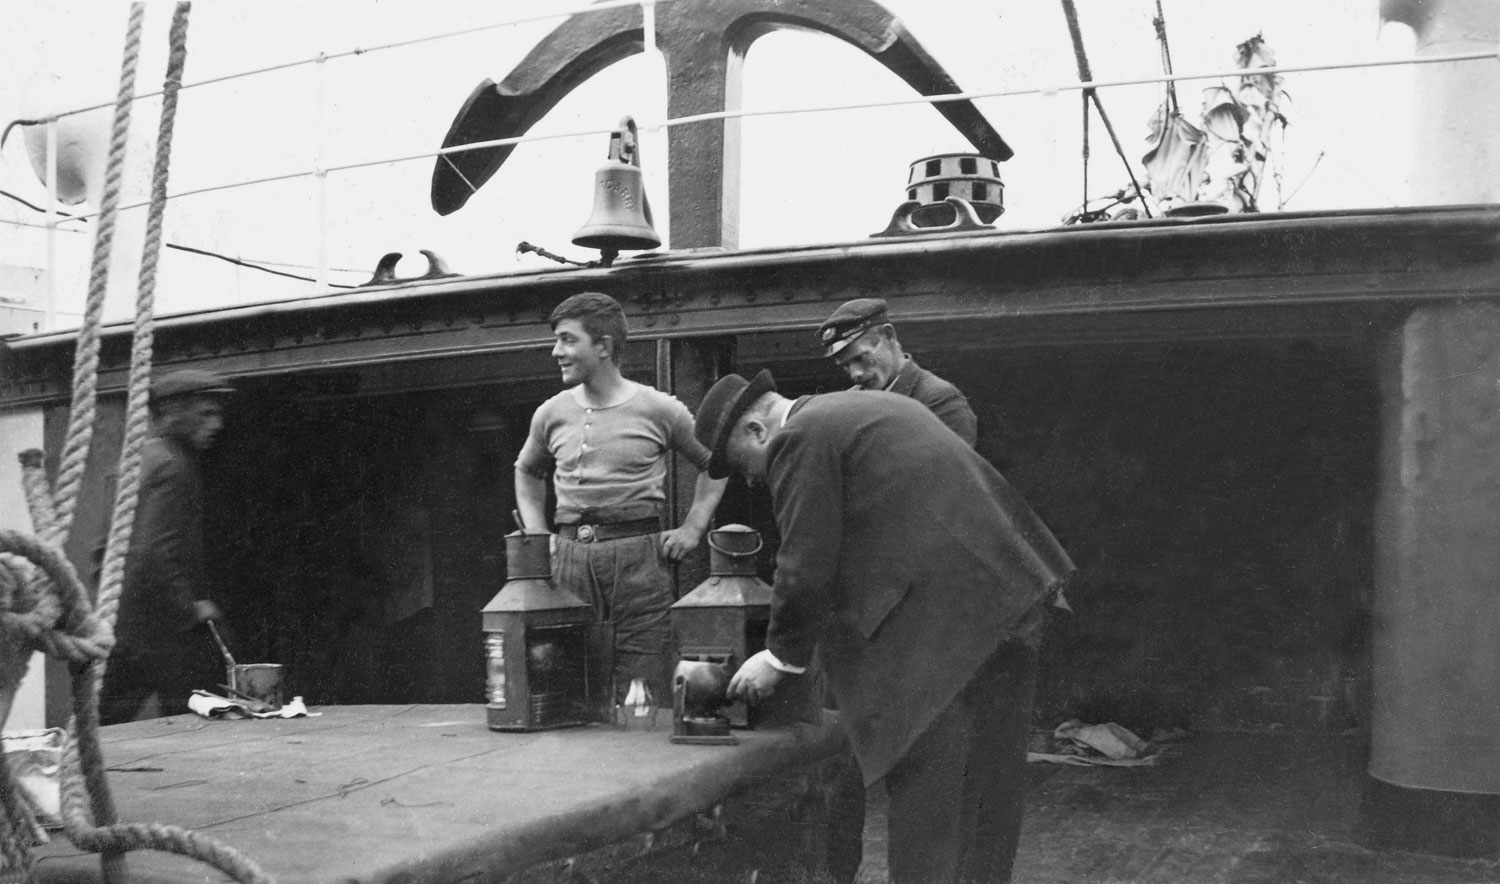 Inspection of signal lamps aboard a tender used to ferry passengers to the Titanic, 1912.